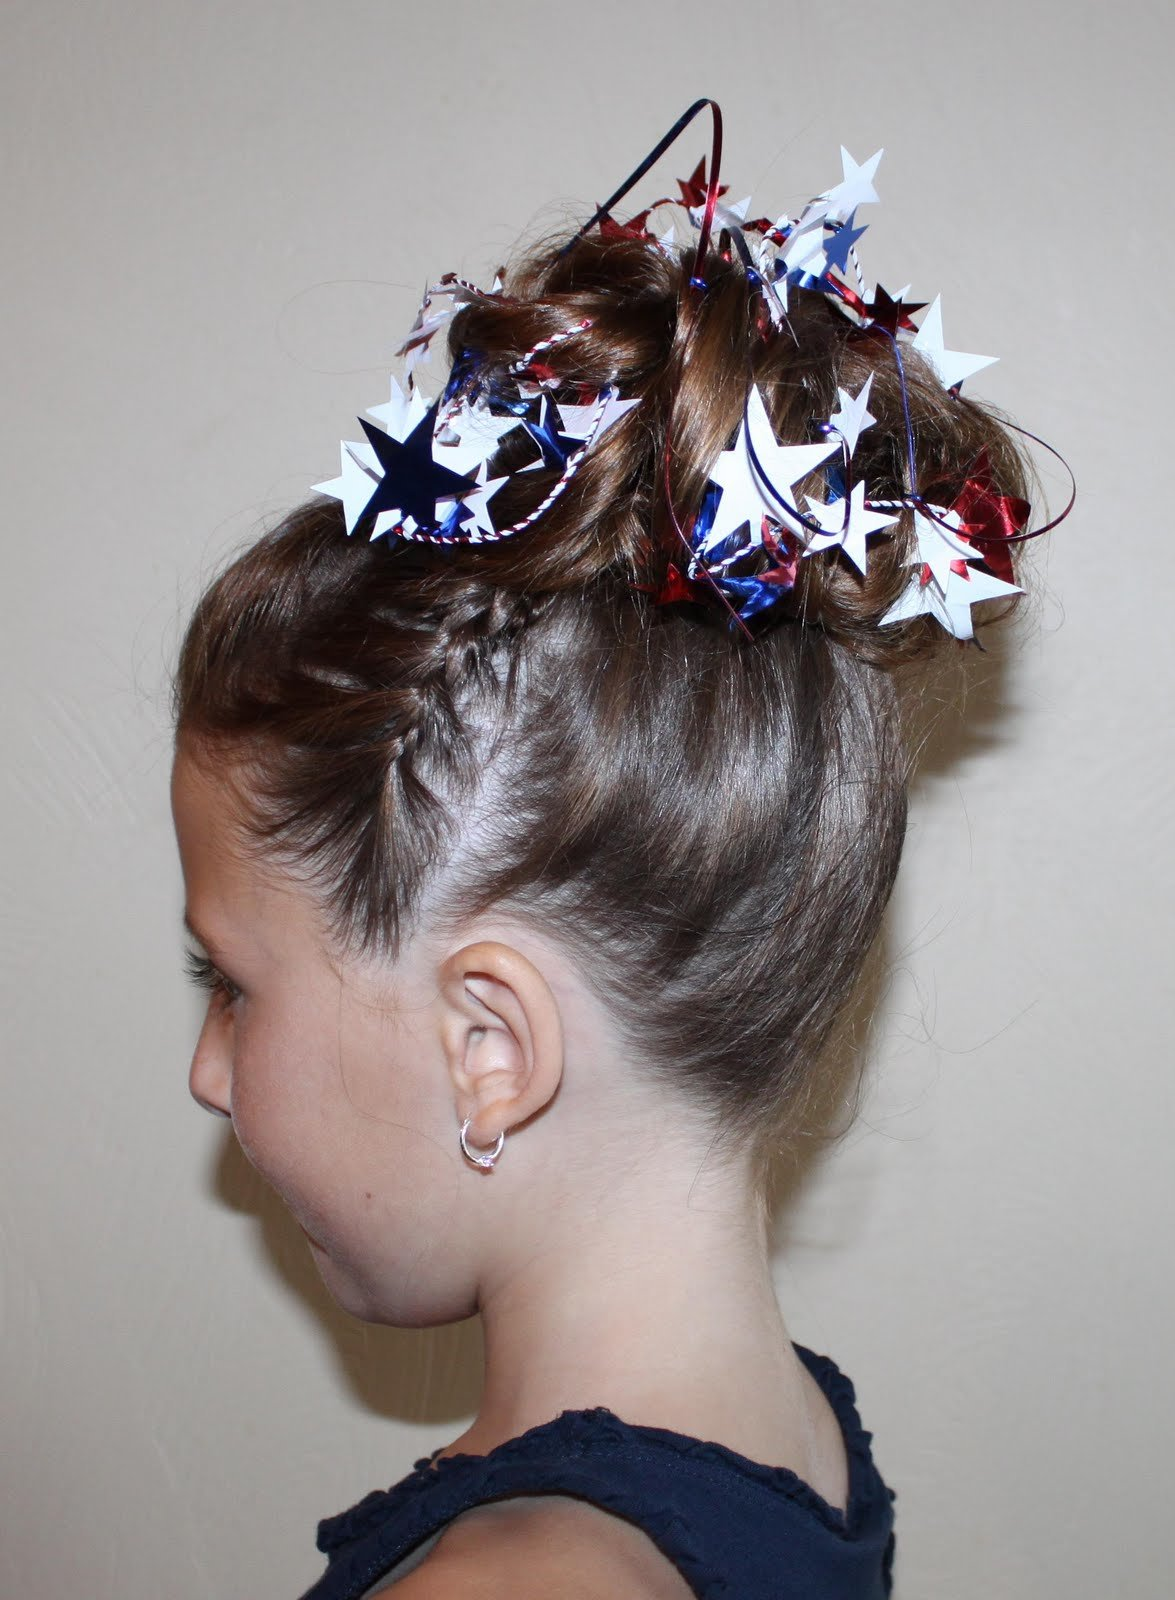 New Hairstyles For Girls The Wright Hair 4Th Of July Fancy Hair Ideas With Pictures